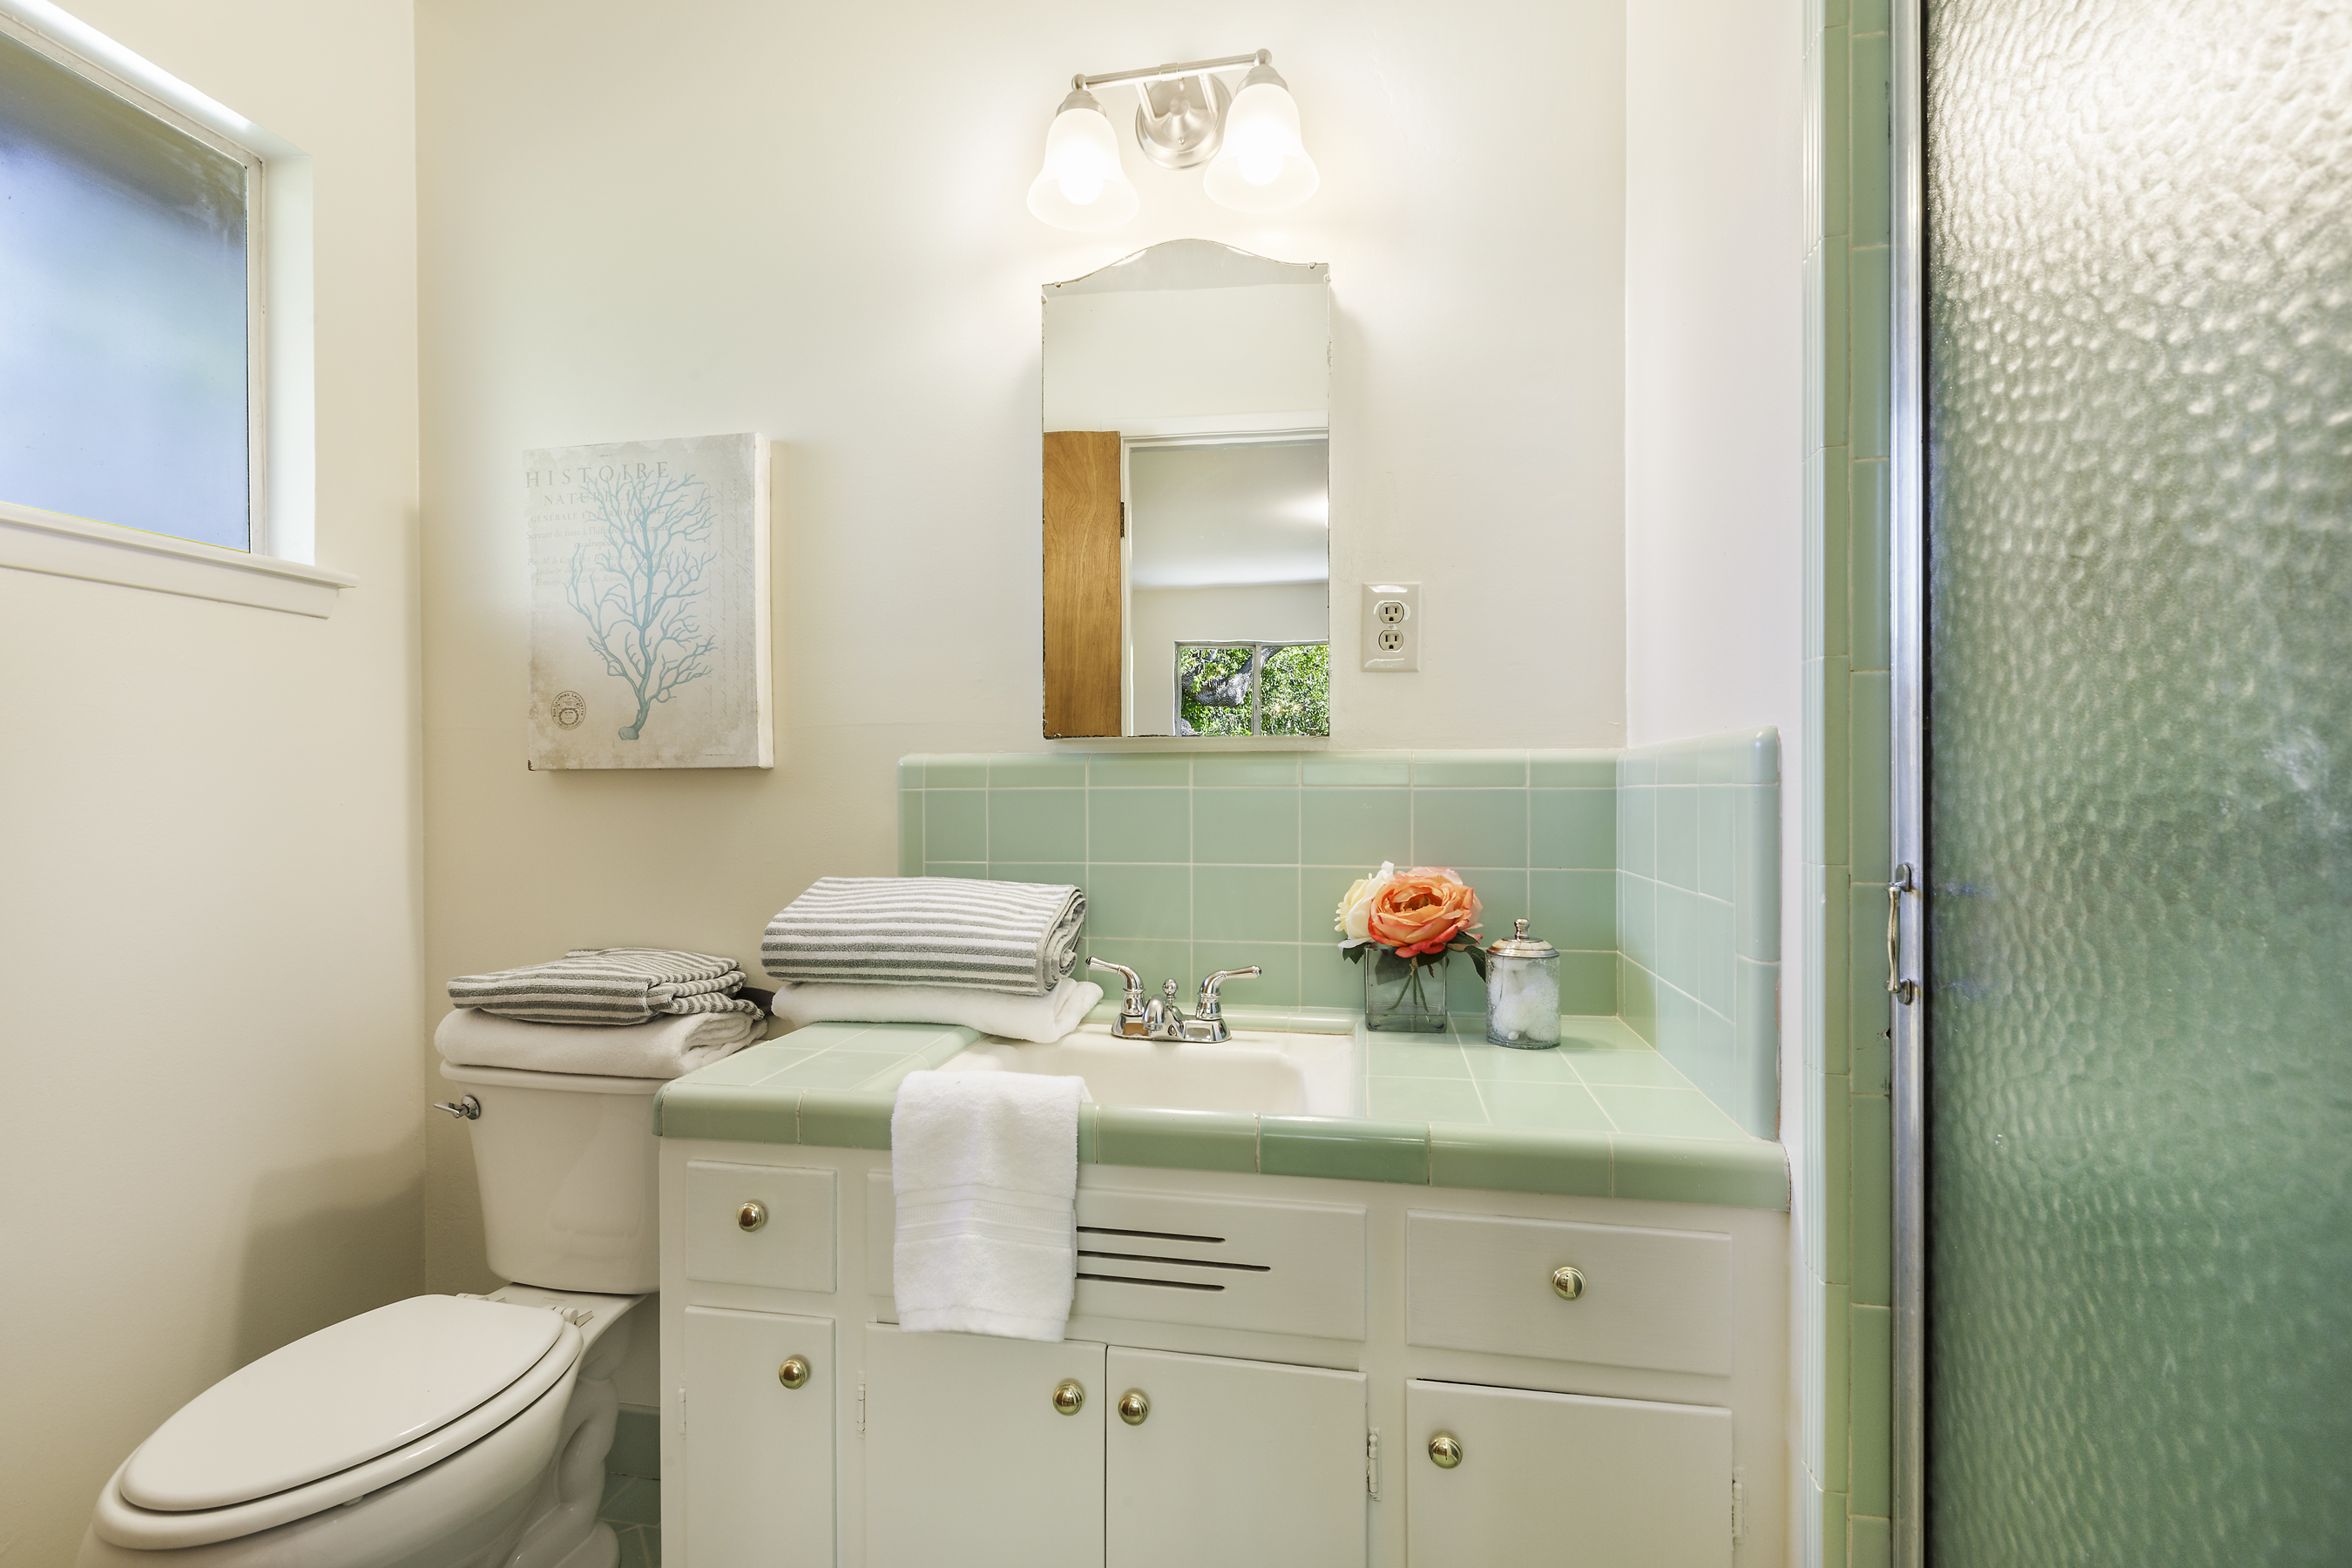 11-2608-Thornhill-1bath-high-res